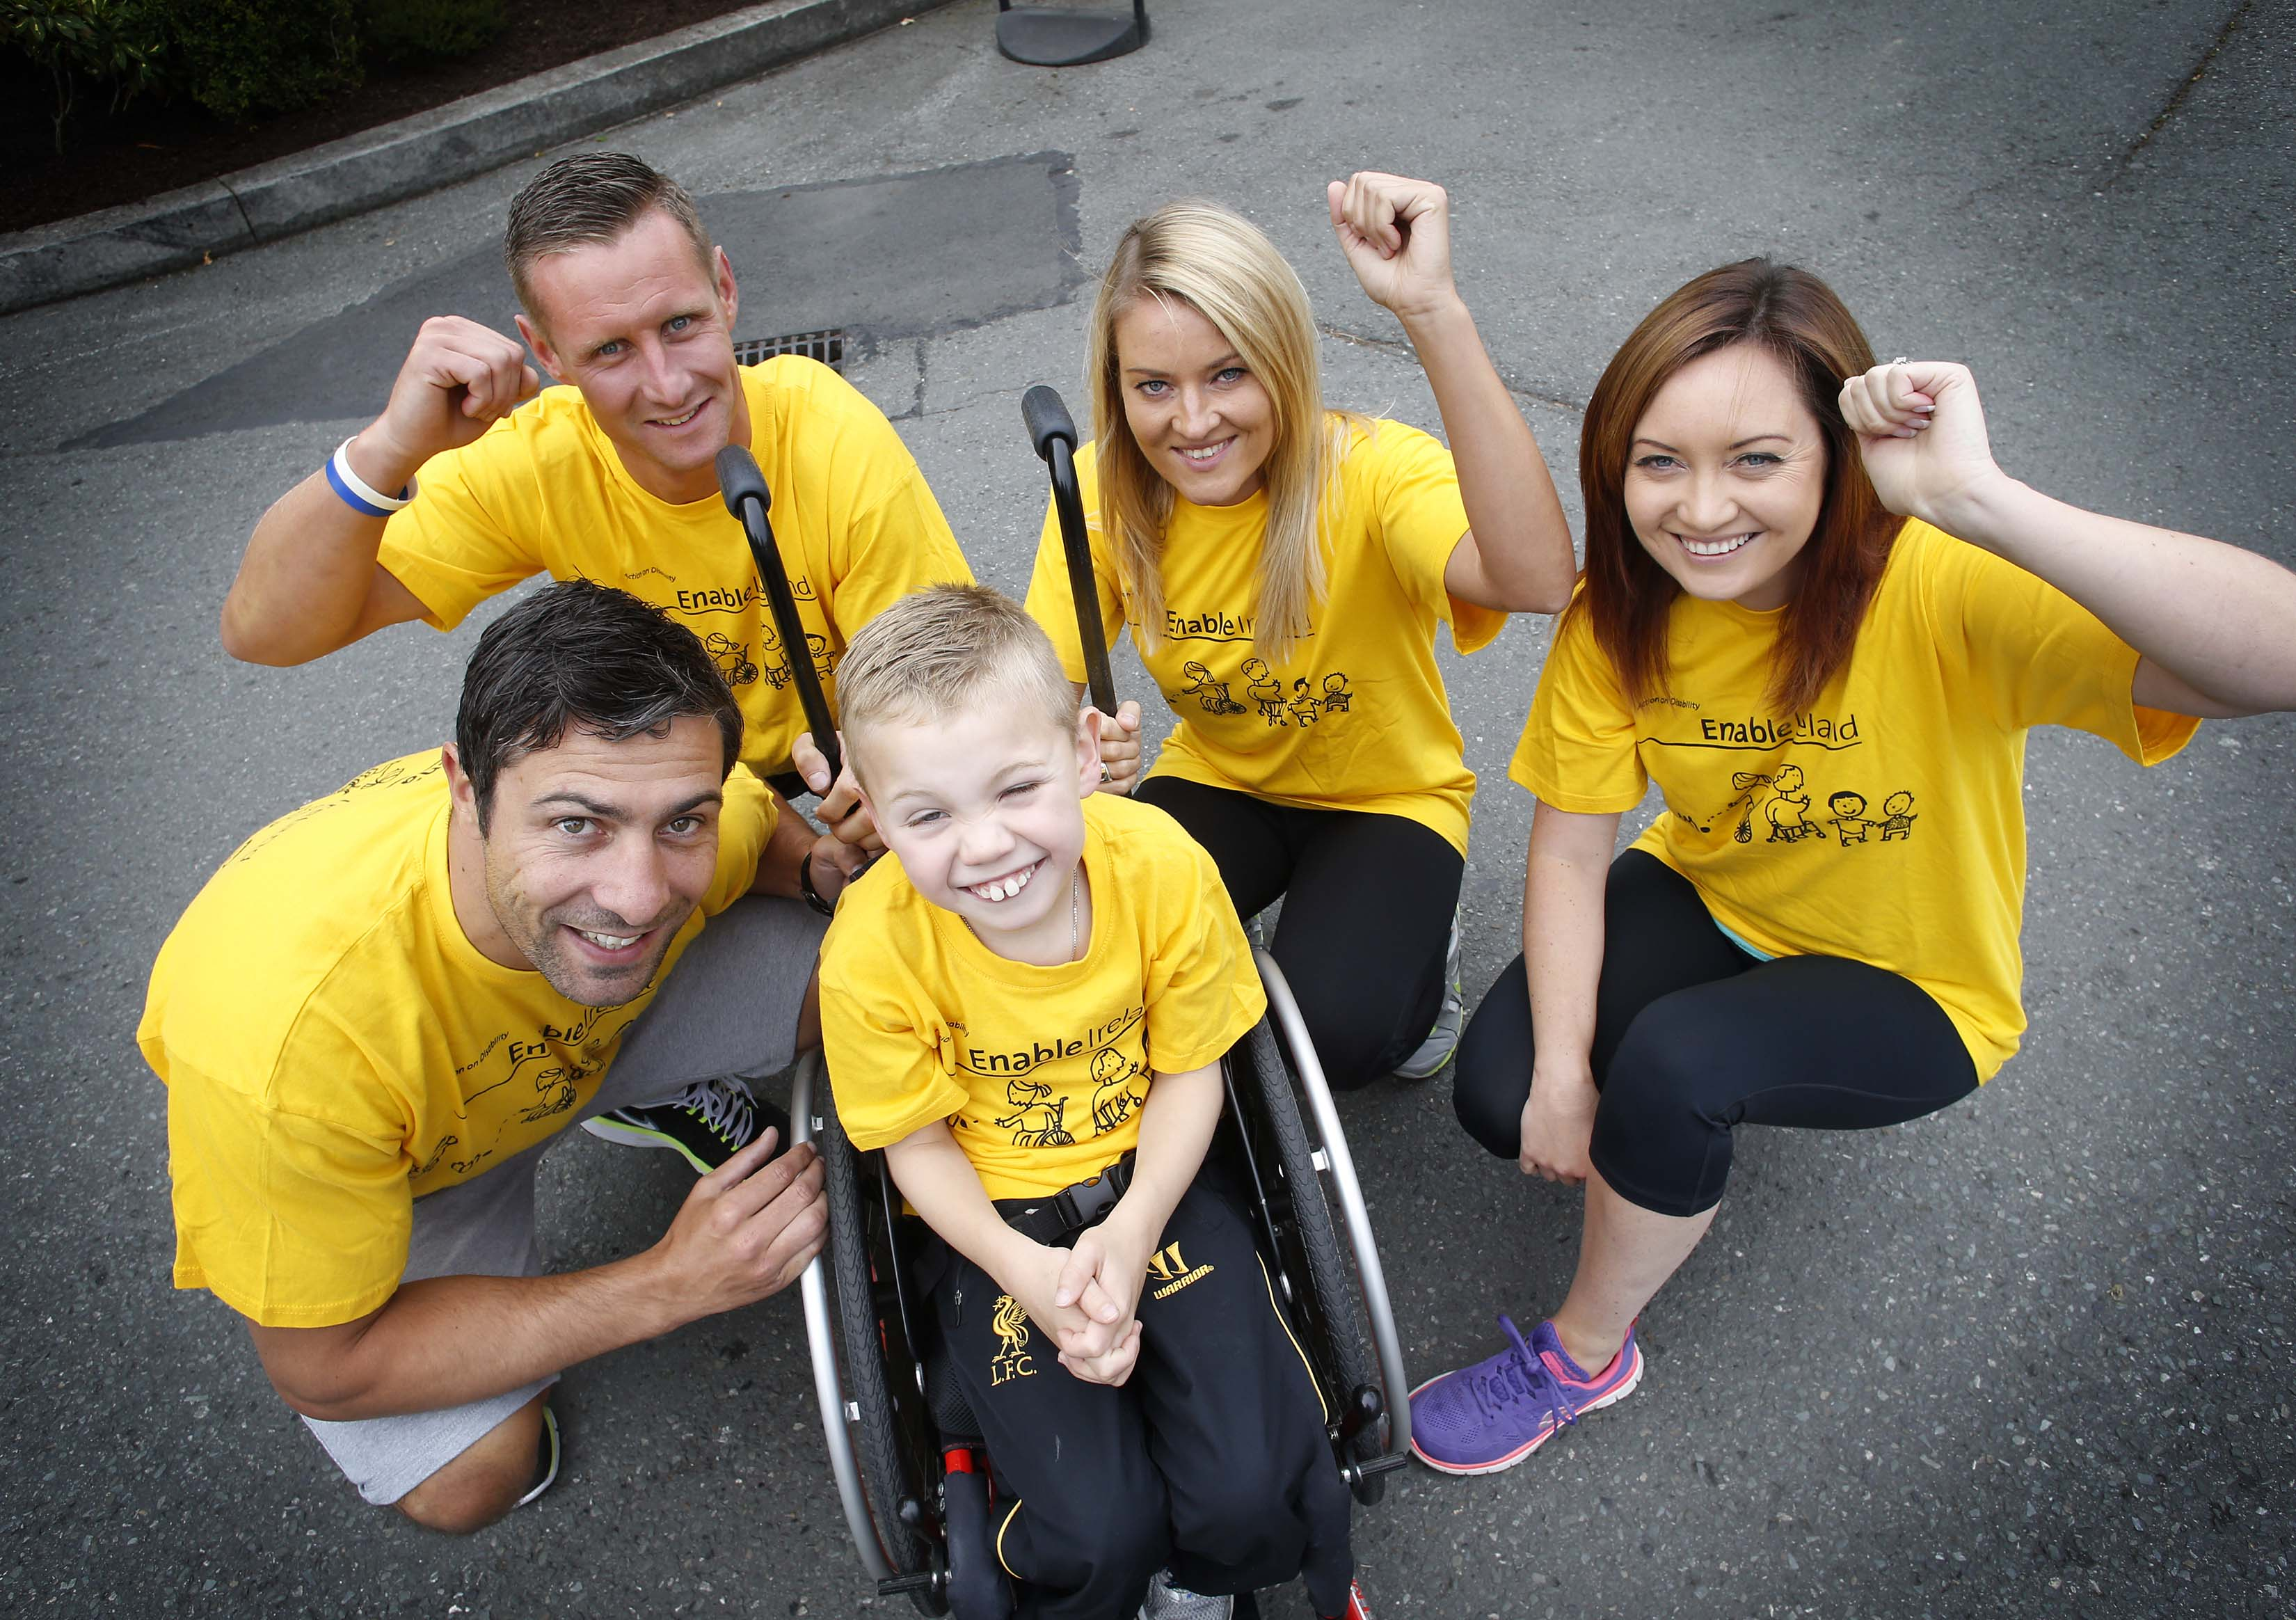 Young boy in Enable Ireland t-shirt using a wheelchair and surrounded by four adults also in yellow Enable Ireland t-shirts smiling